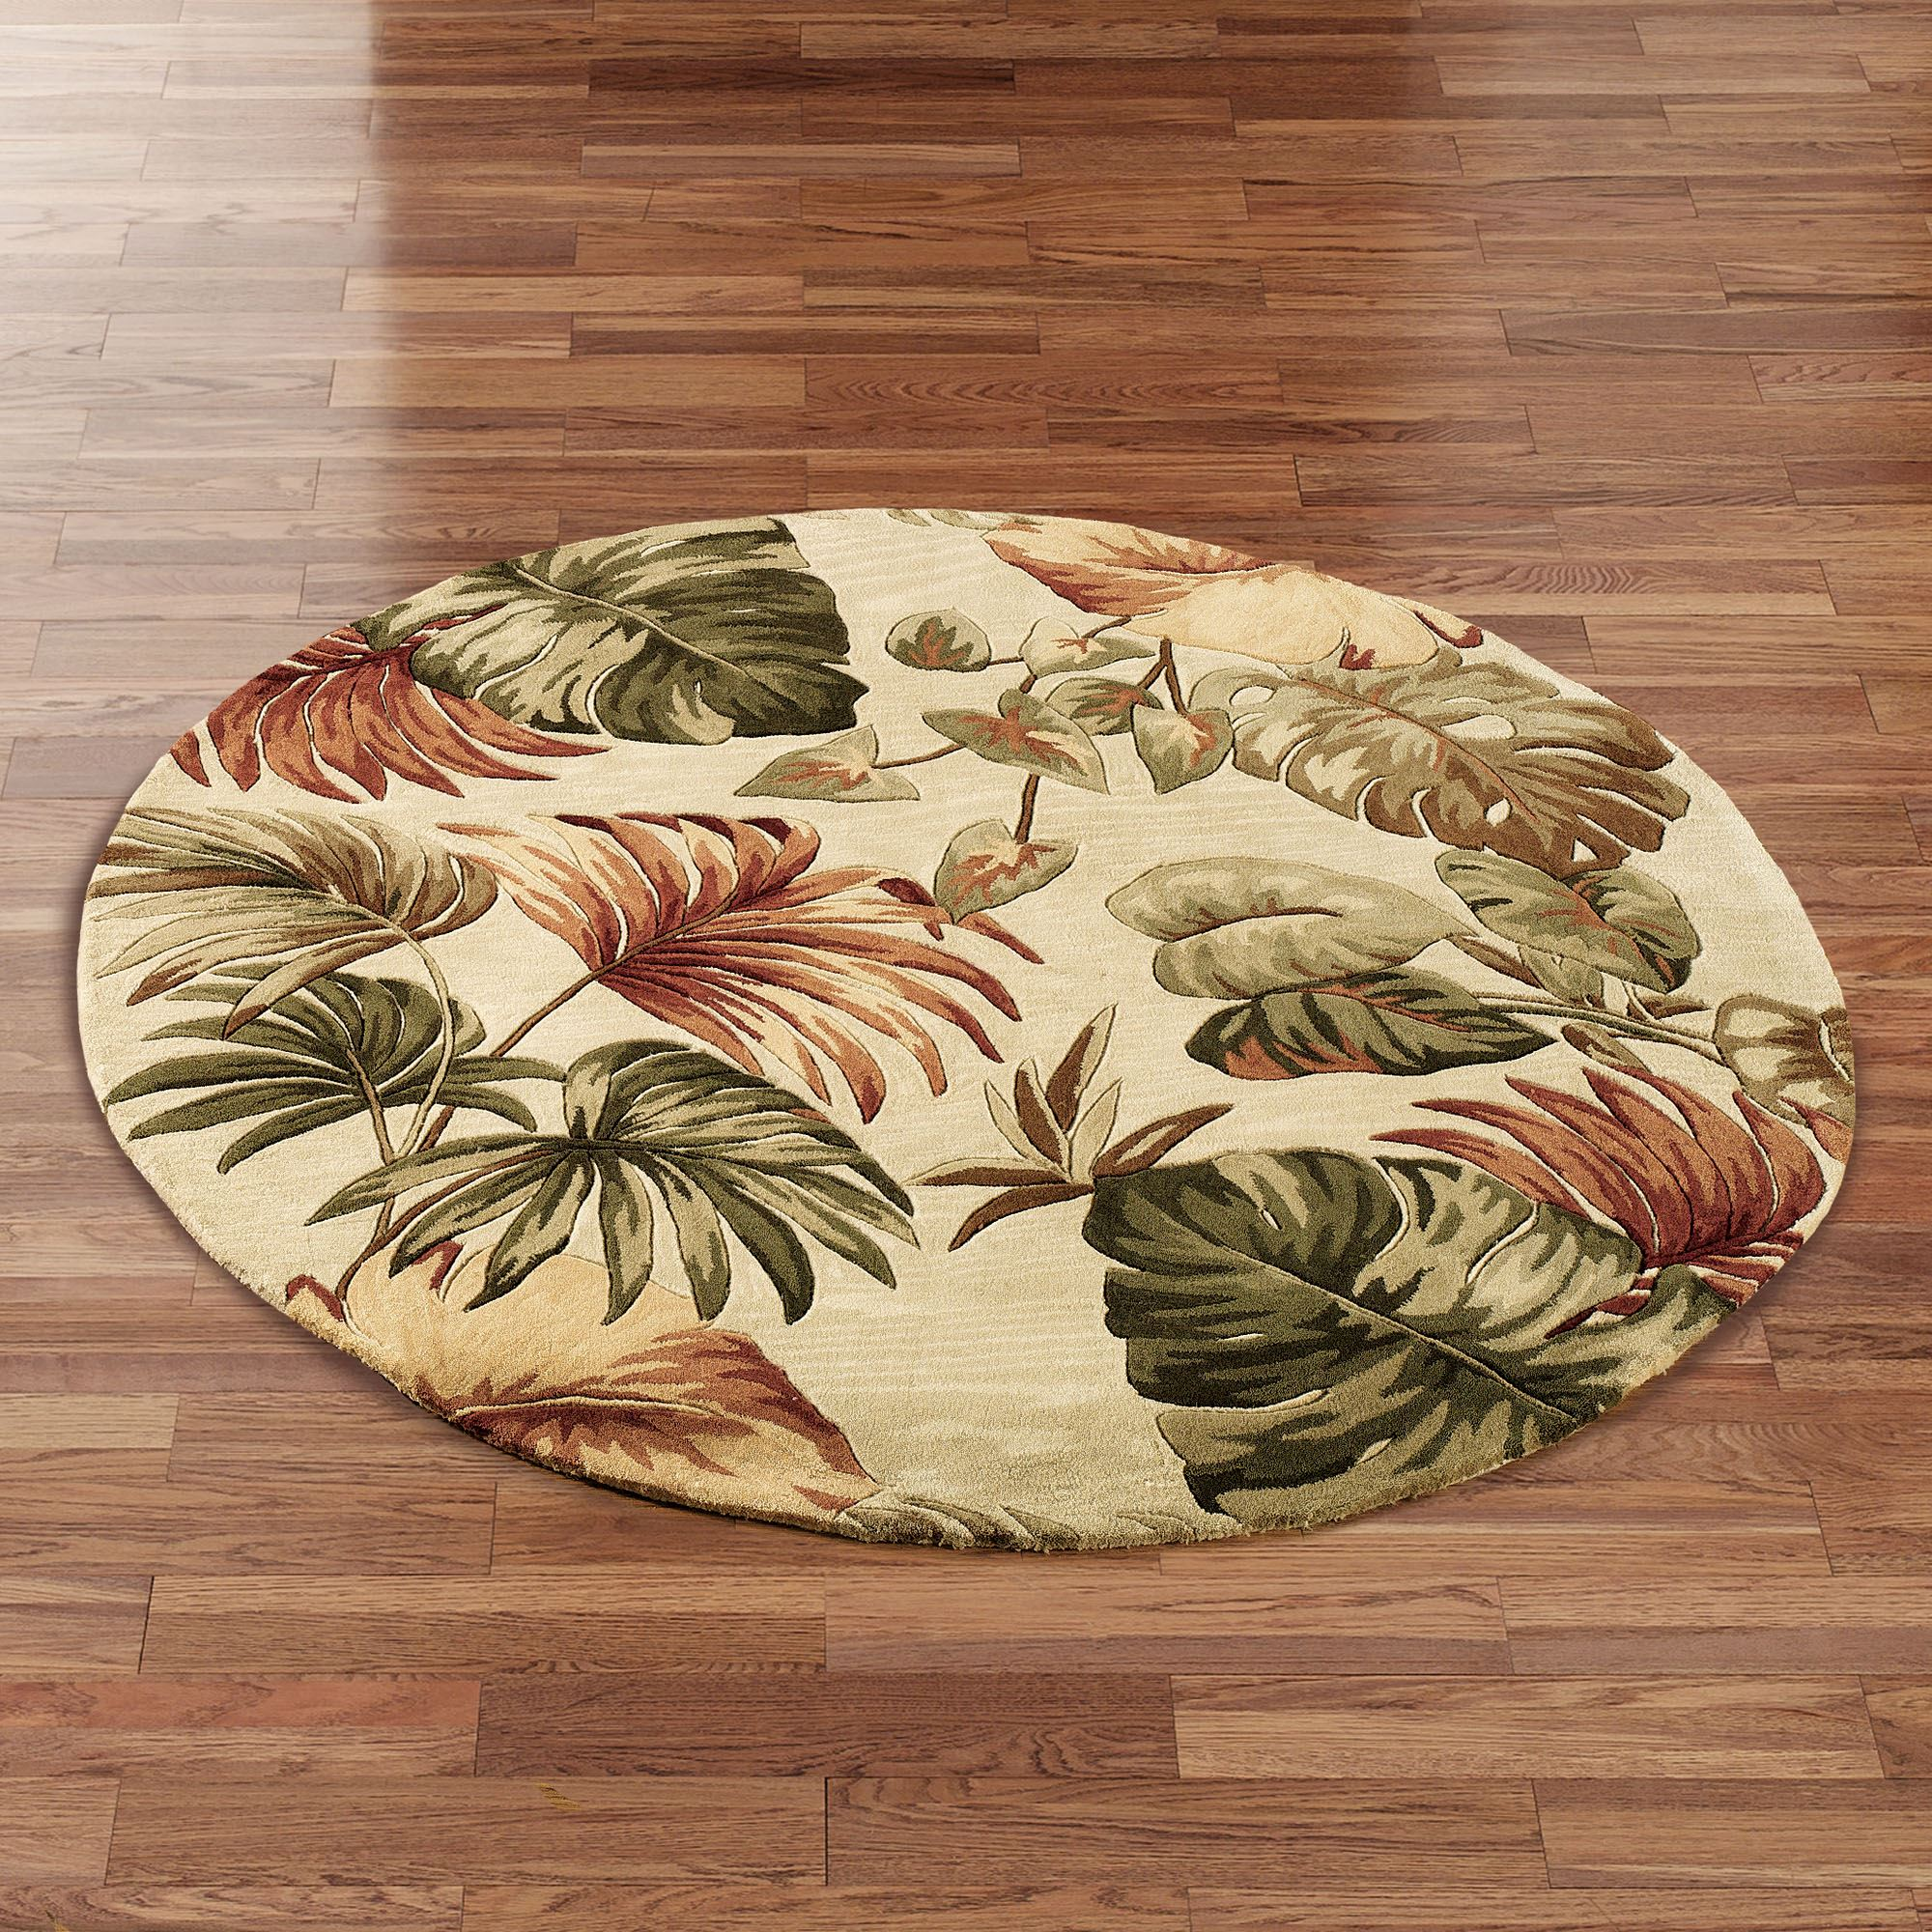 western leather company decoration for and dining rug room oval round green braided ivory plush buy area bedroom wool rugs country wildlife pink brown living star